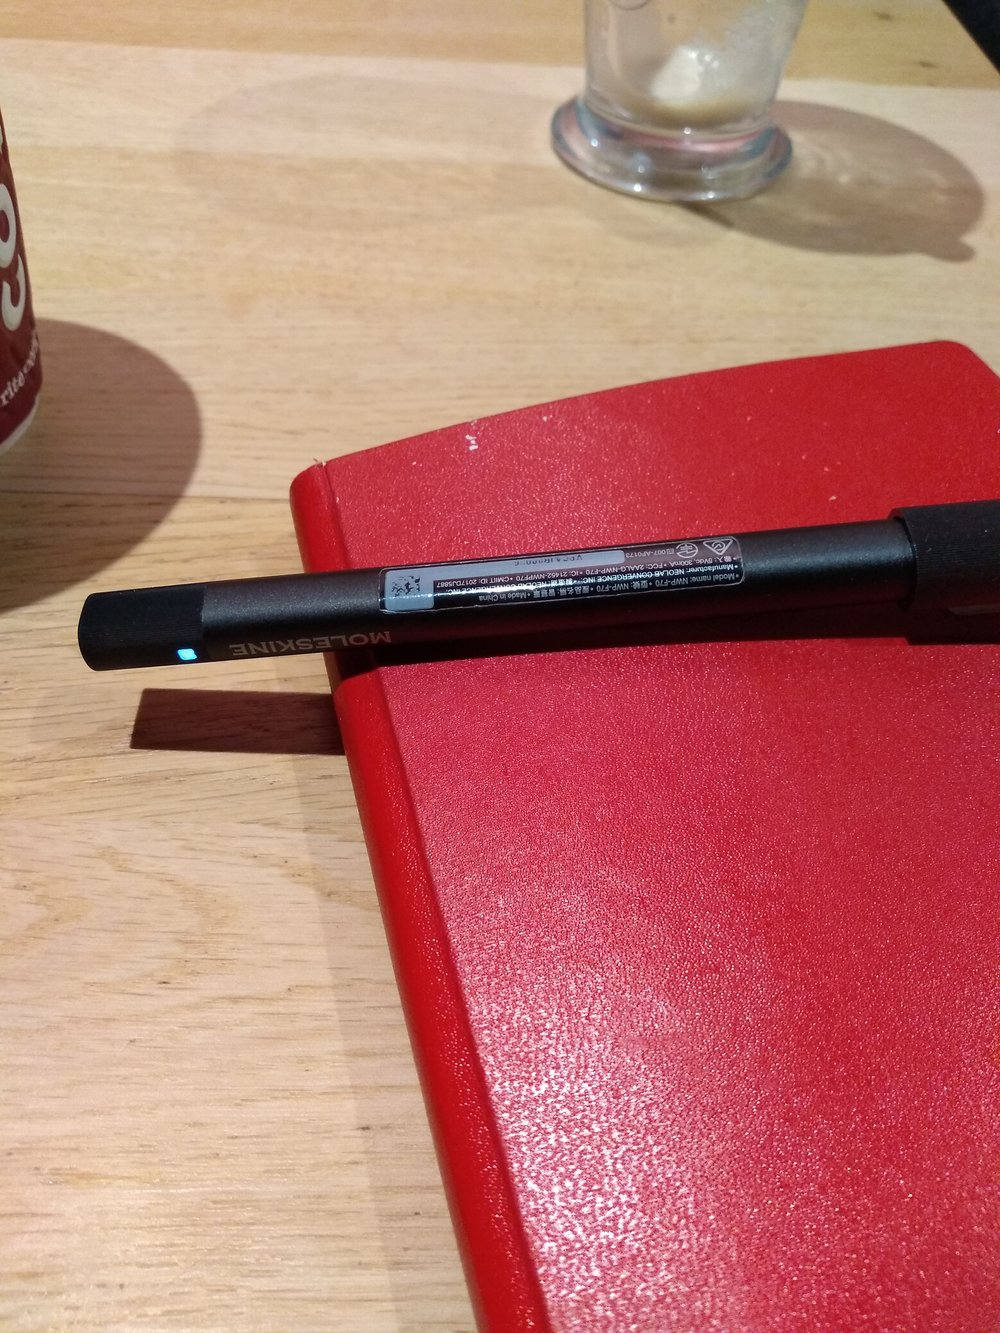 Digital pen and notebook by Terry Freedman